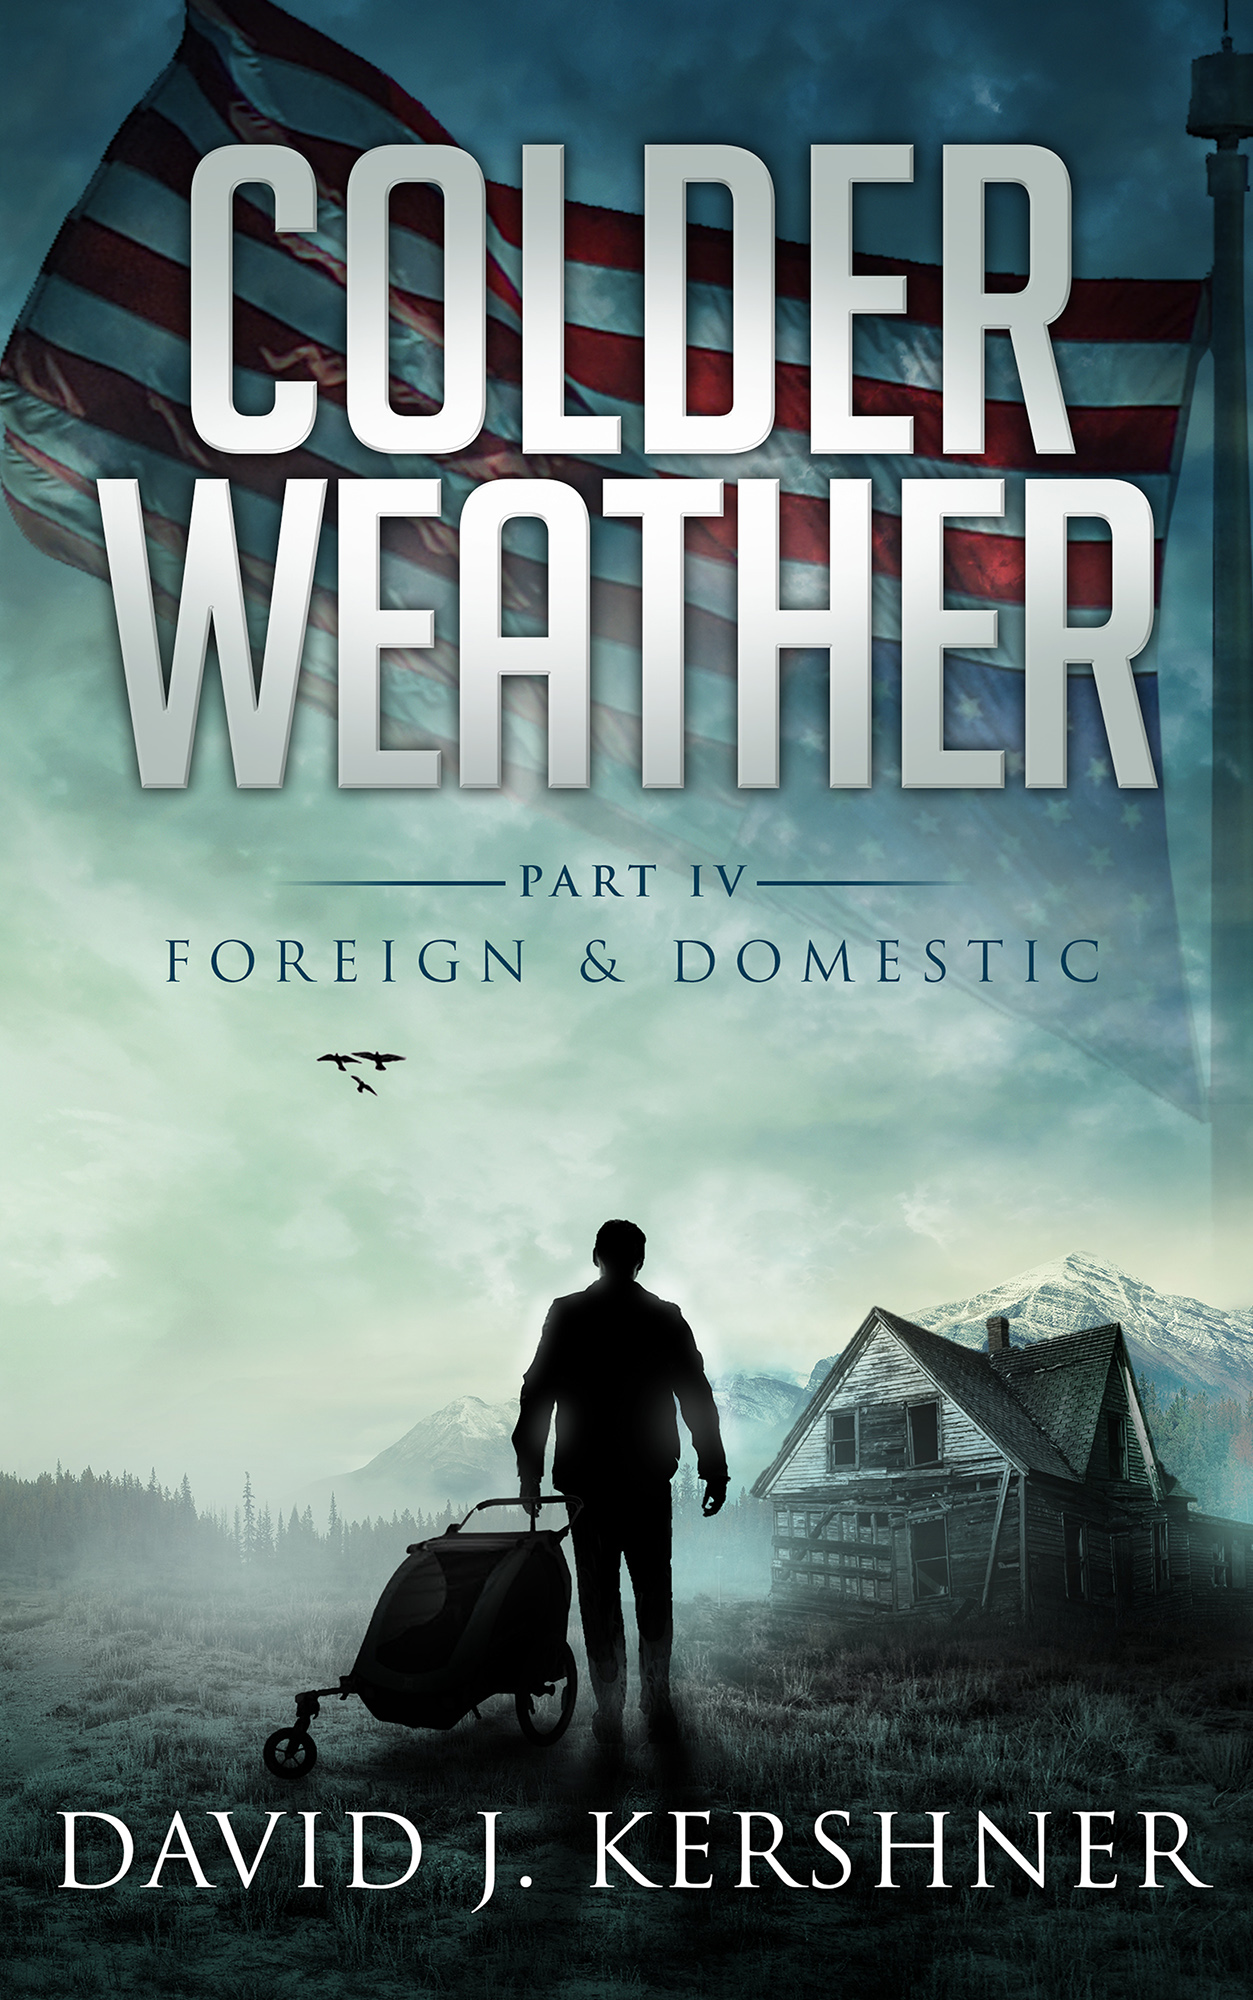 Colder Weather-BOOK 4-a2-EB-small-1253x200.jpg